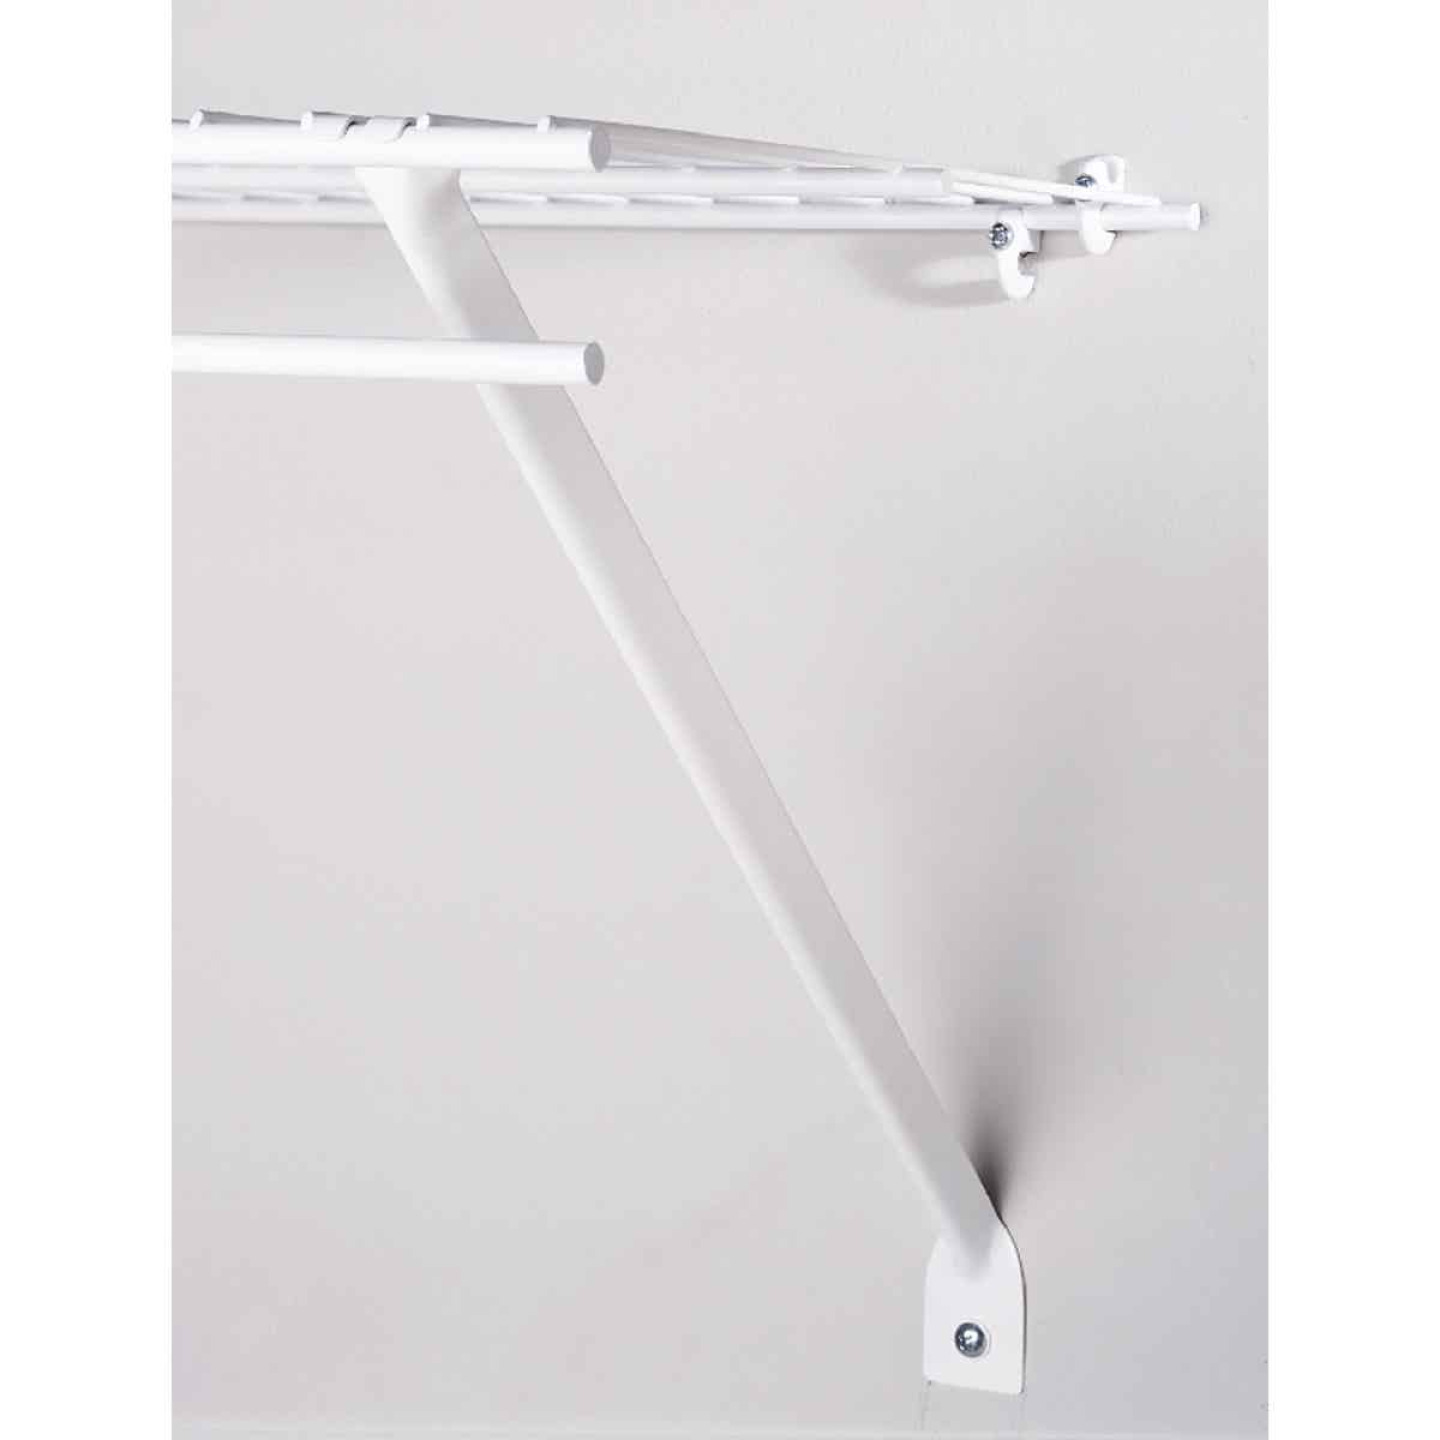 Closetmaid Wire Shelf Wall Clips For Drywall Image 2